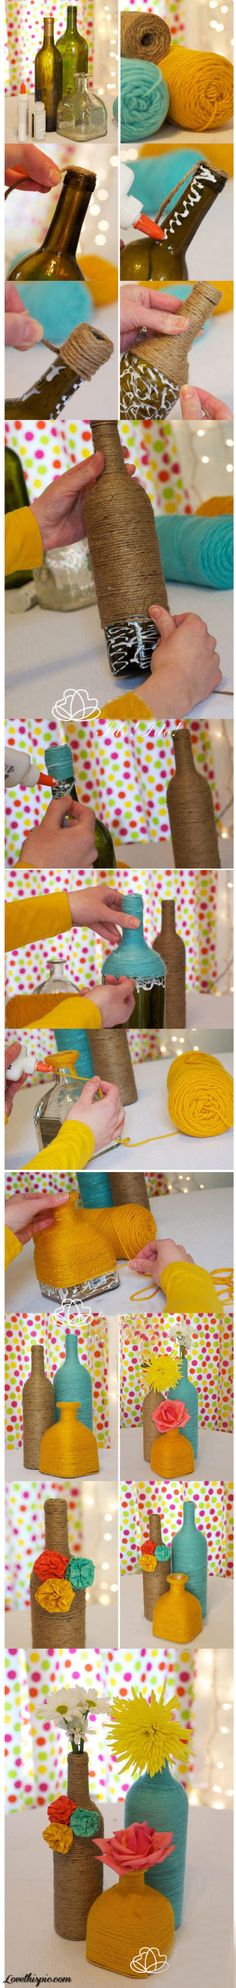 DIY Yarn Bottles diy crafts craft ideas easy crafts diy ideas diy idea diy home diy vase easy diy for the home crafty decor home ideas diy decorations